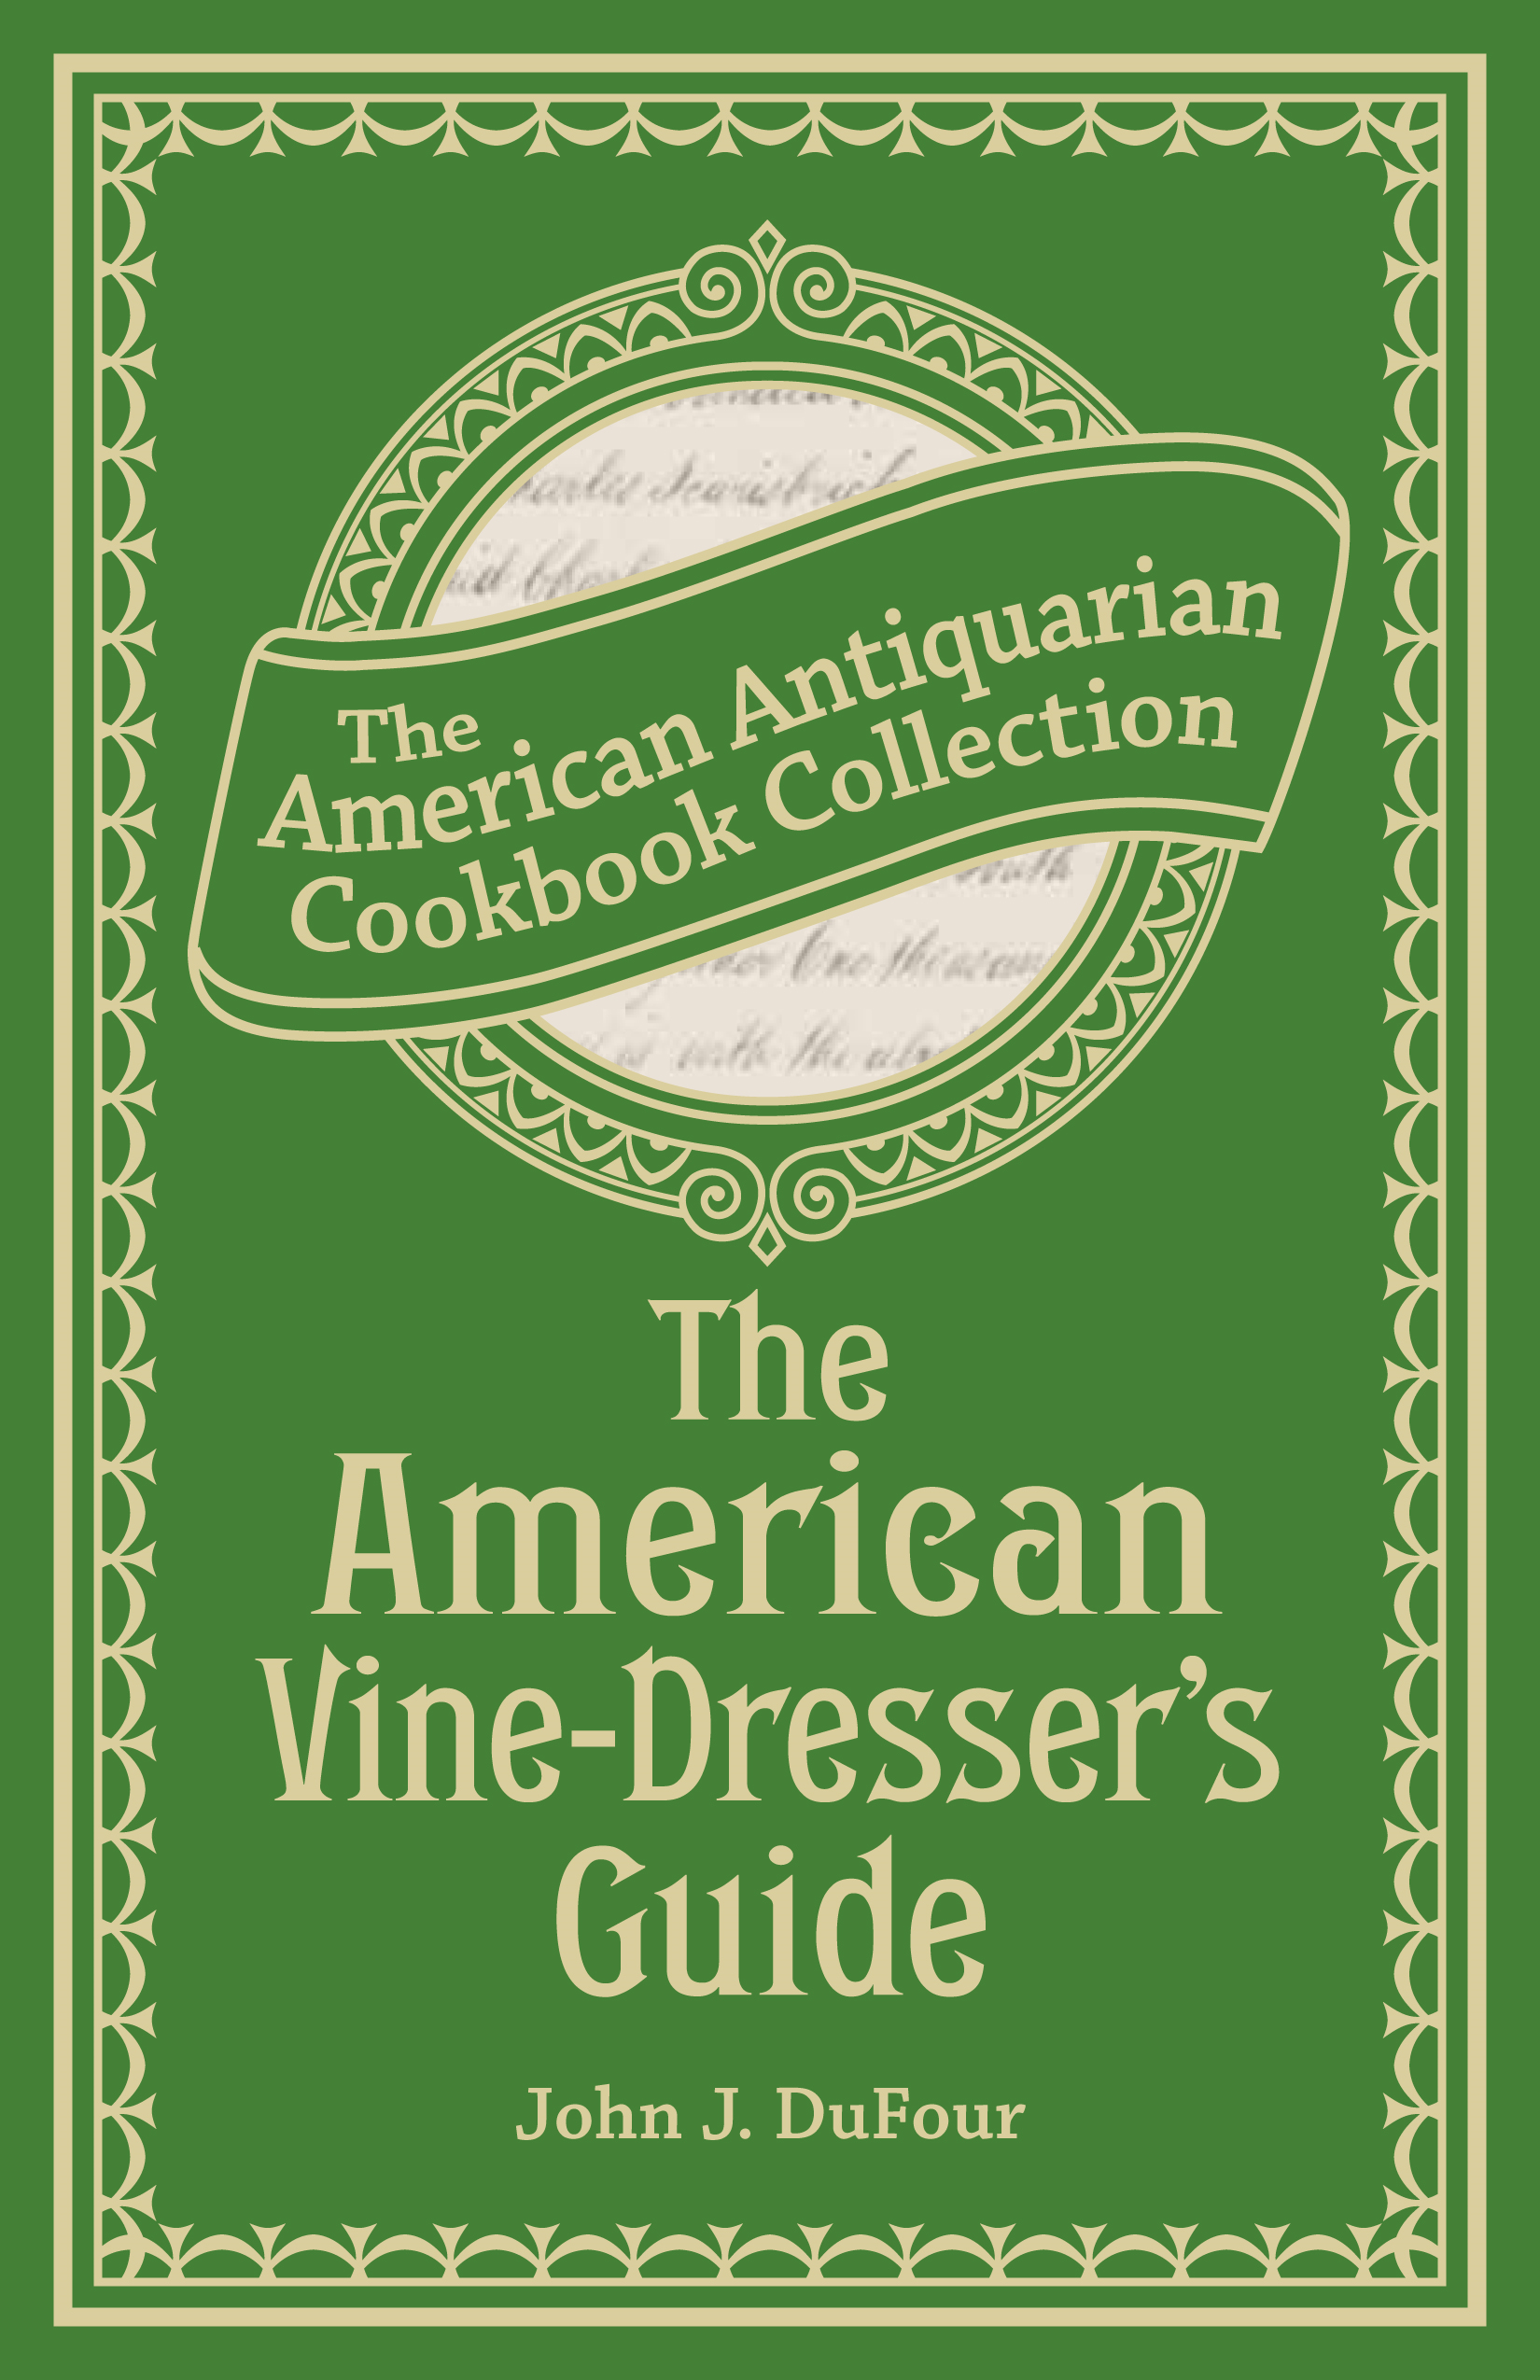 The American Vine-Dresser's Guide